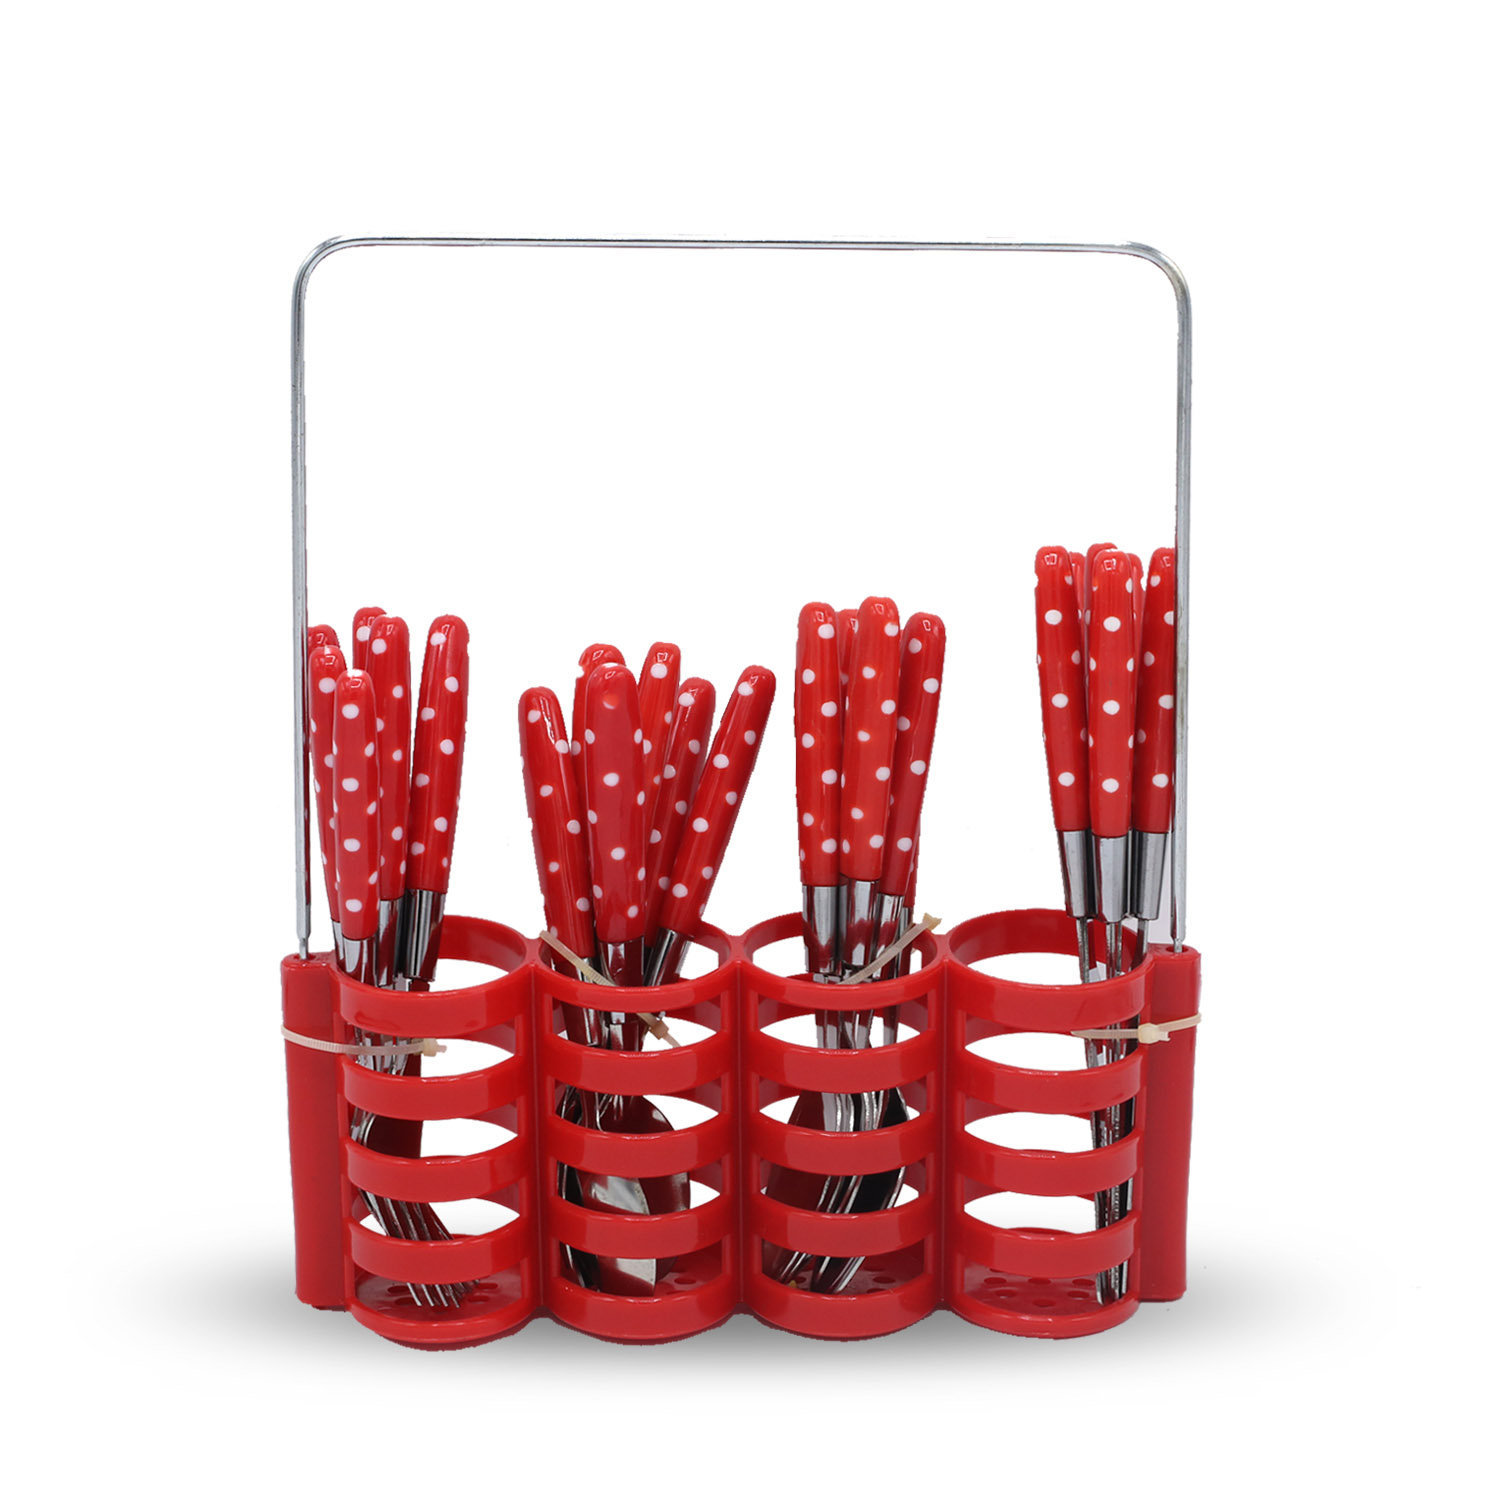 Yes House S-S Cutlery Set W-Holder 24pcs P-1199 B